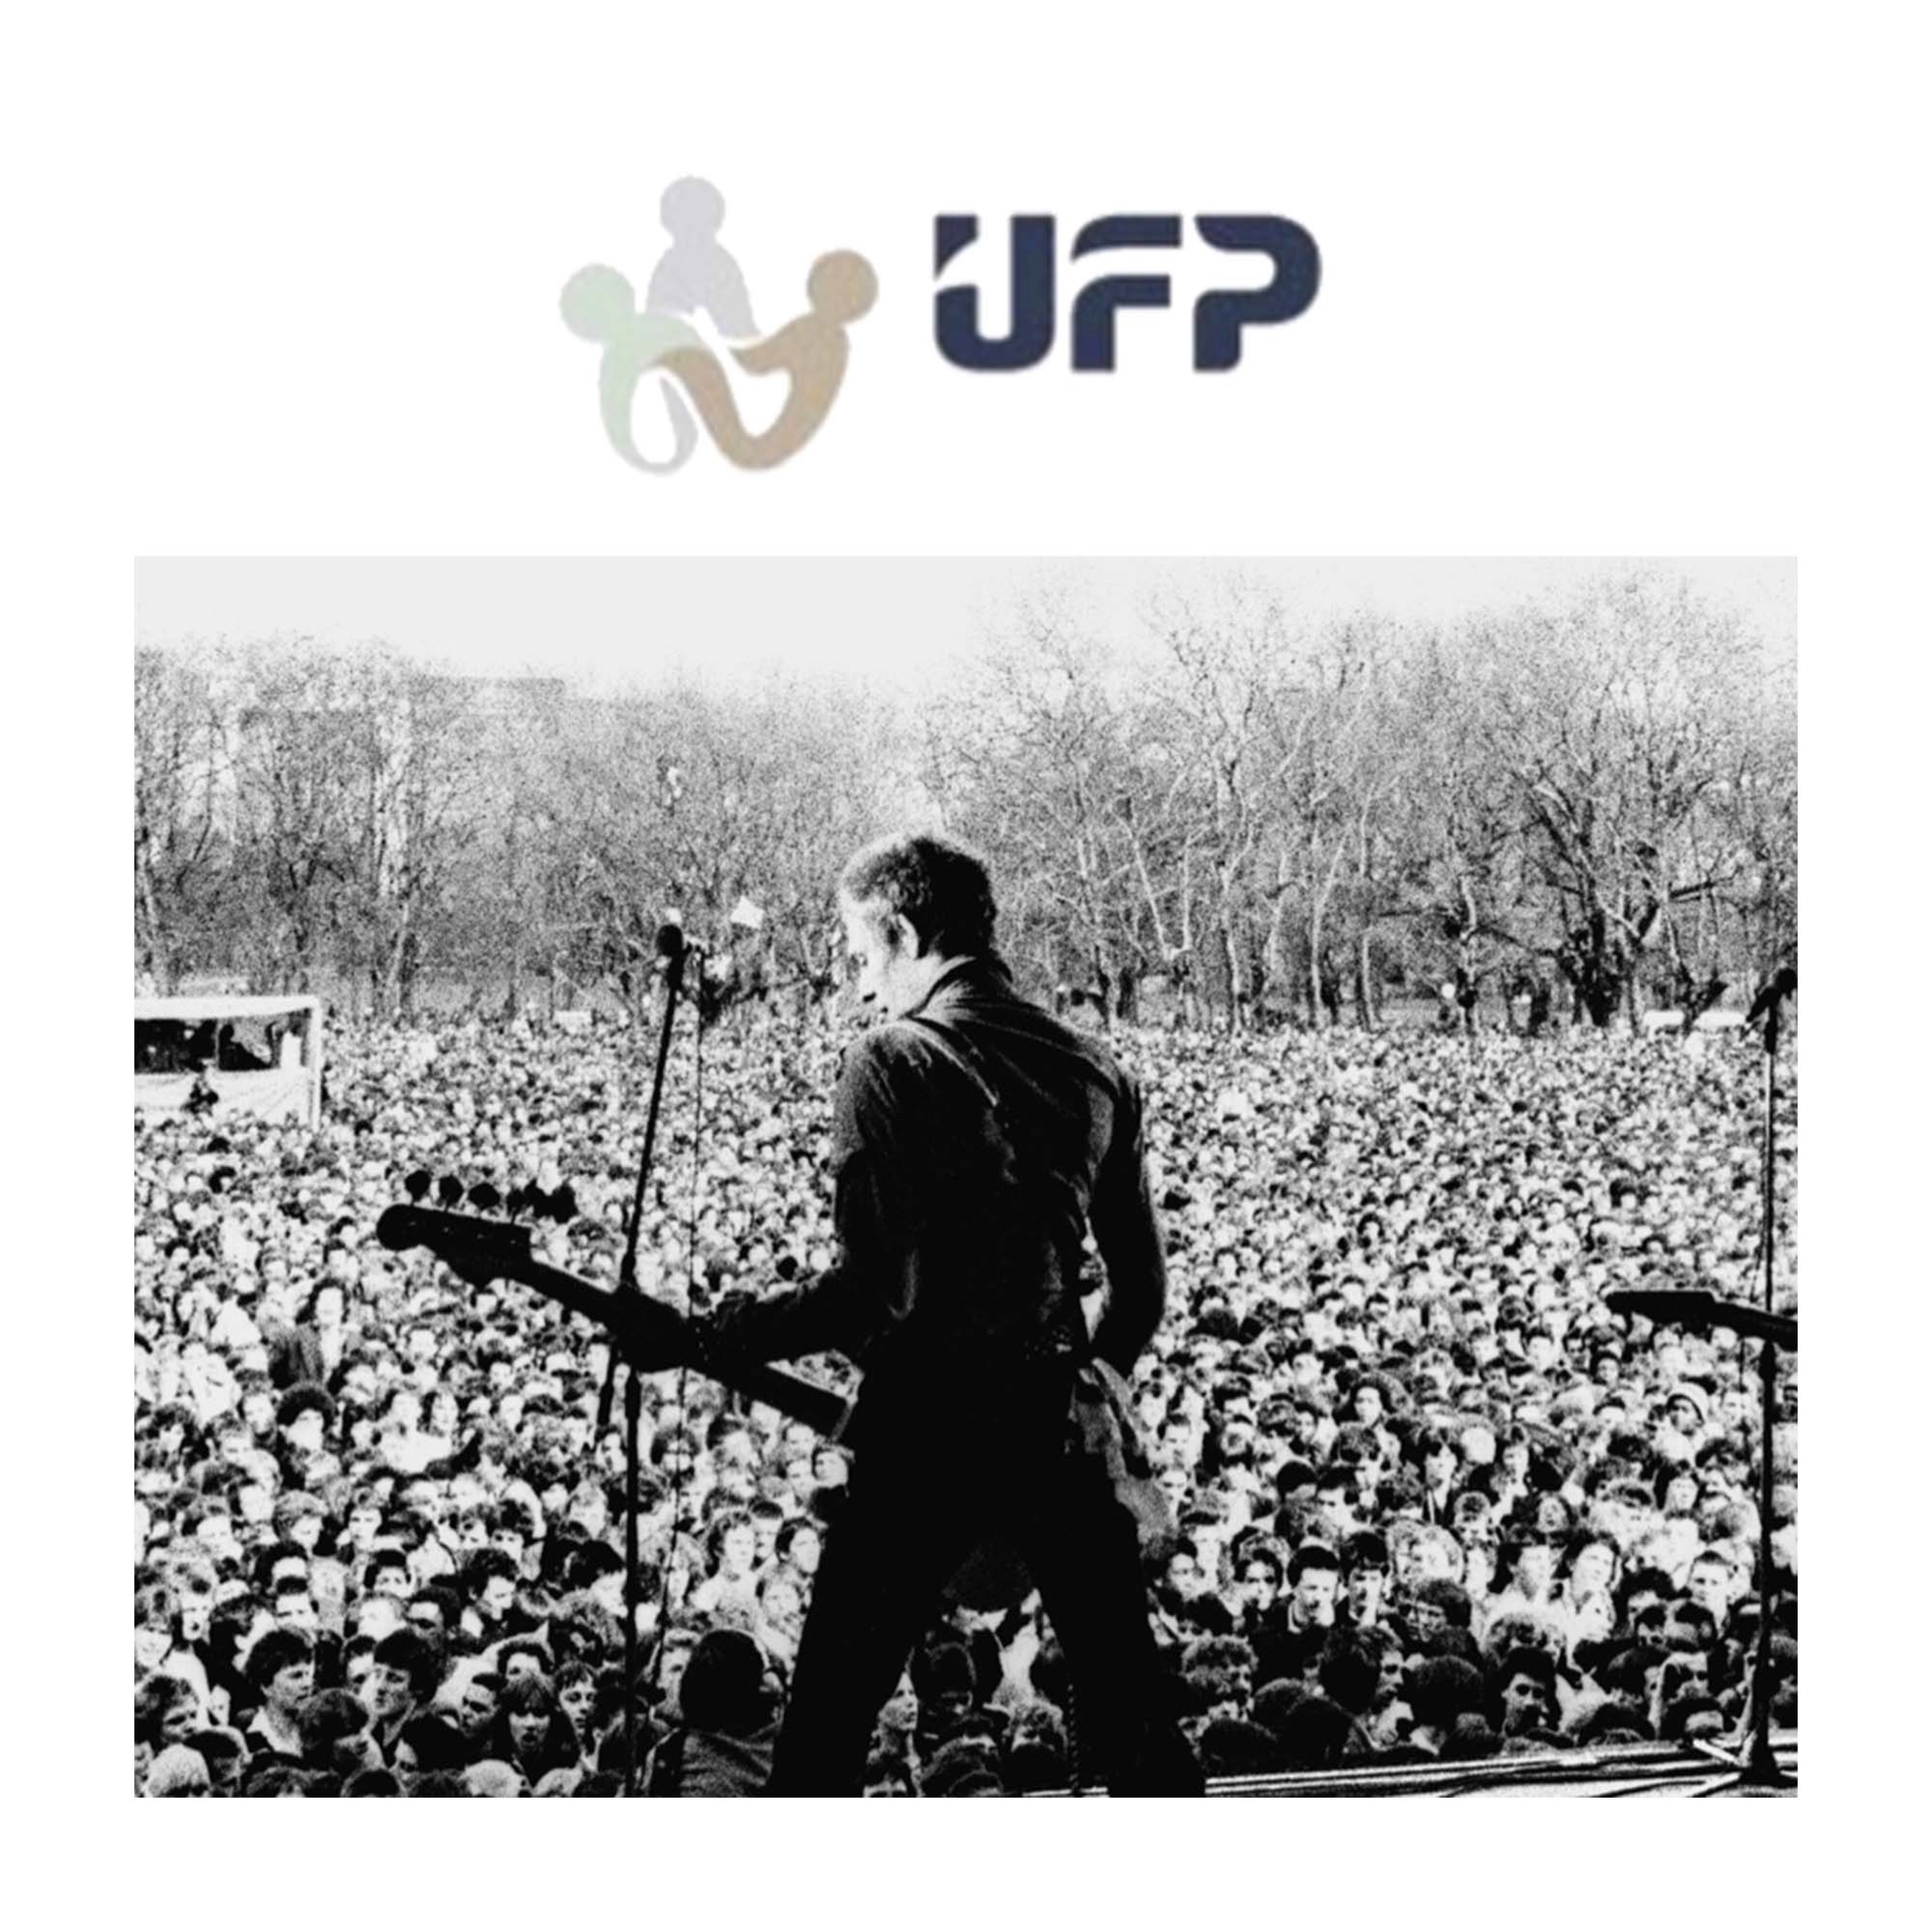 WHITE RIOT with UFP Film Club